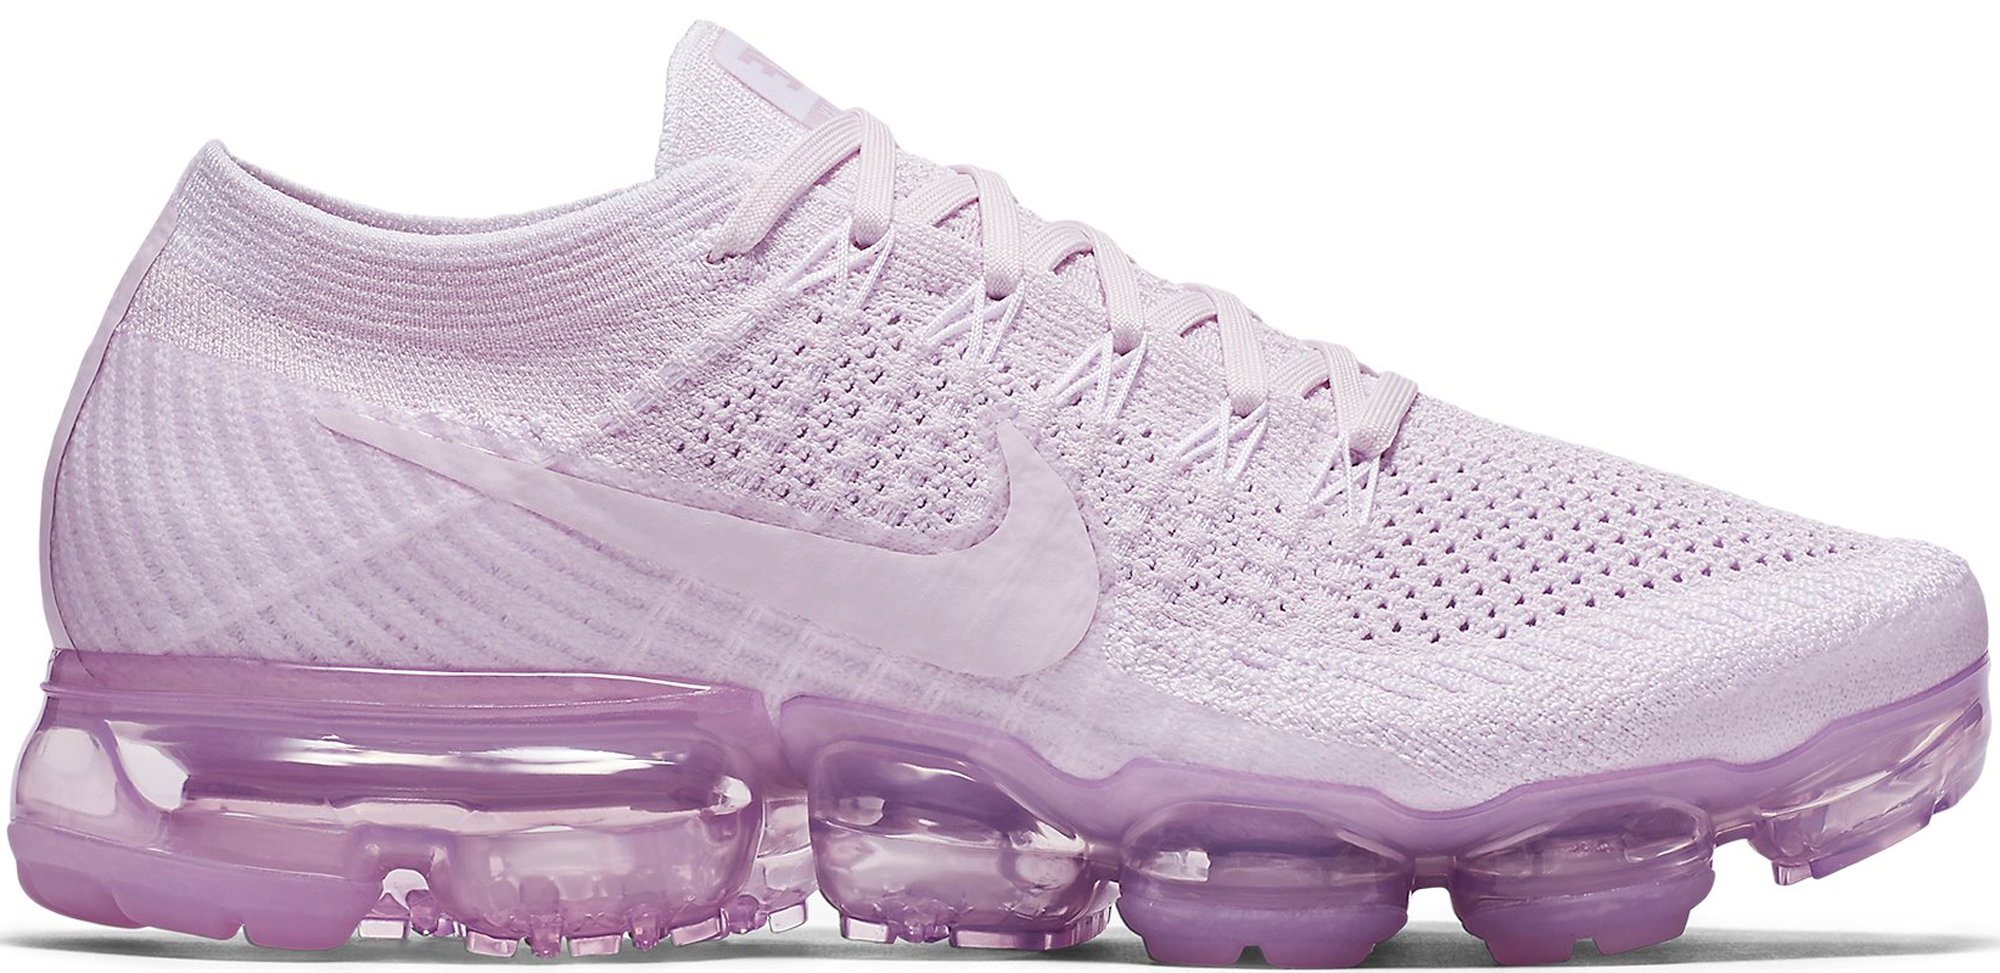 60e5cb25f6be Women s Nike Air VaporMax Light Violet Flyknit Day To Night